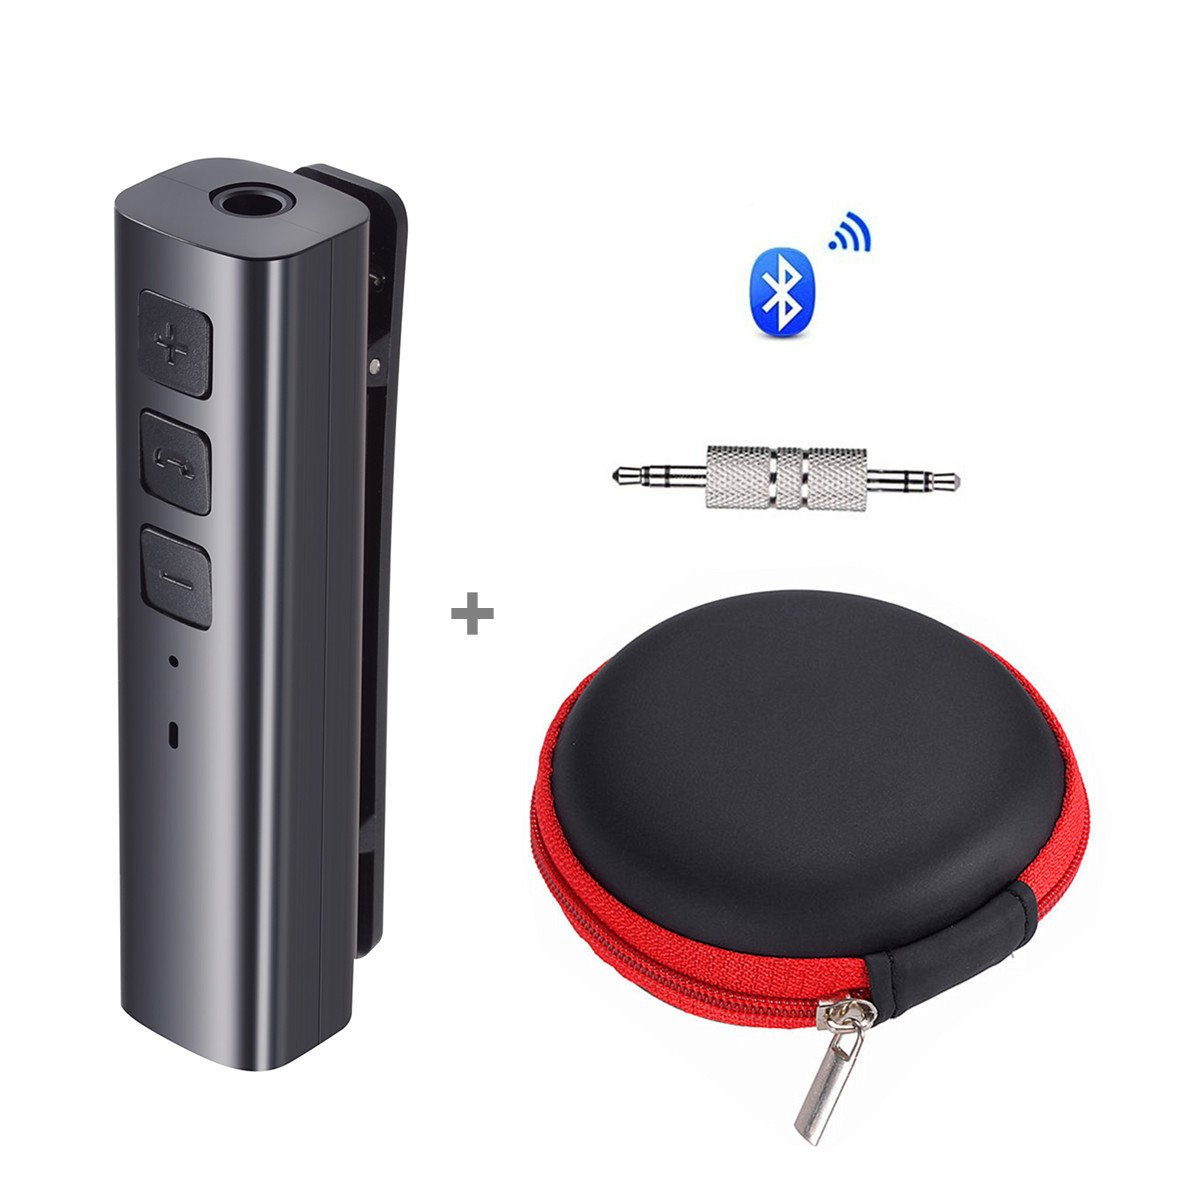 AROUSE Bluetooth Receiver 4.1 Wireless Audio Receiver Headphone Adapter 3.5mm AUX Jack Hands-Free Clip Design Bluetooth Audio Adapter Compatible Home/Car Audio Stereo System, Black by AROUSE